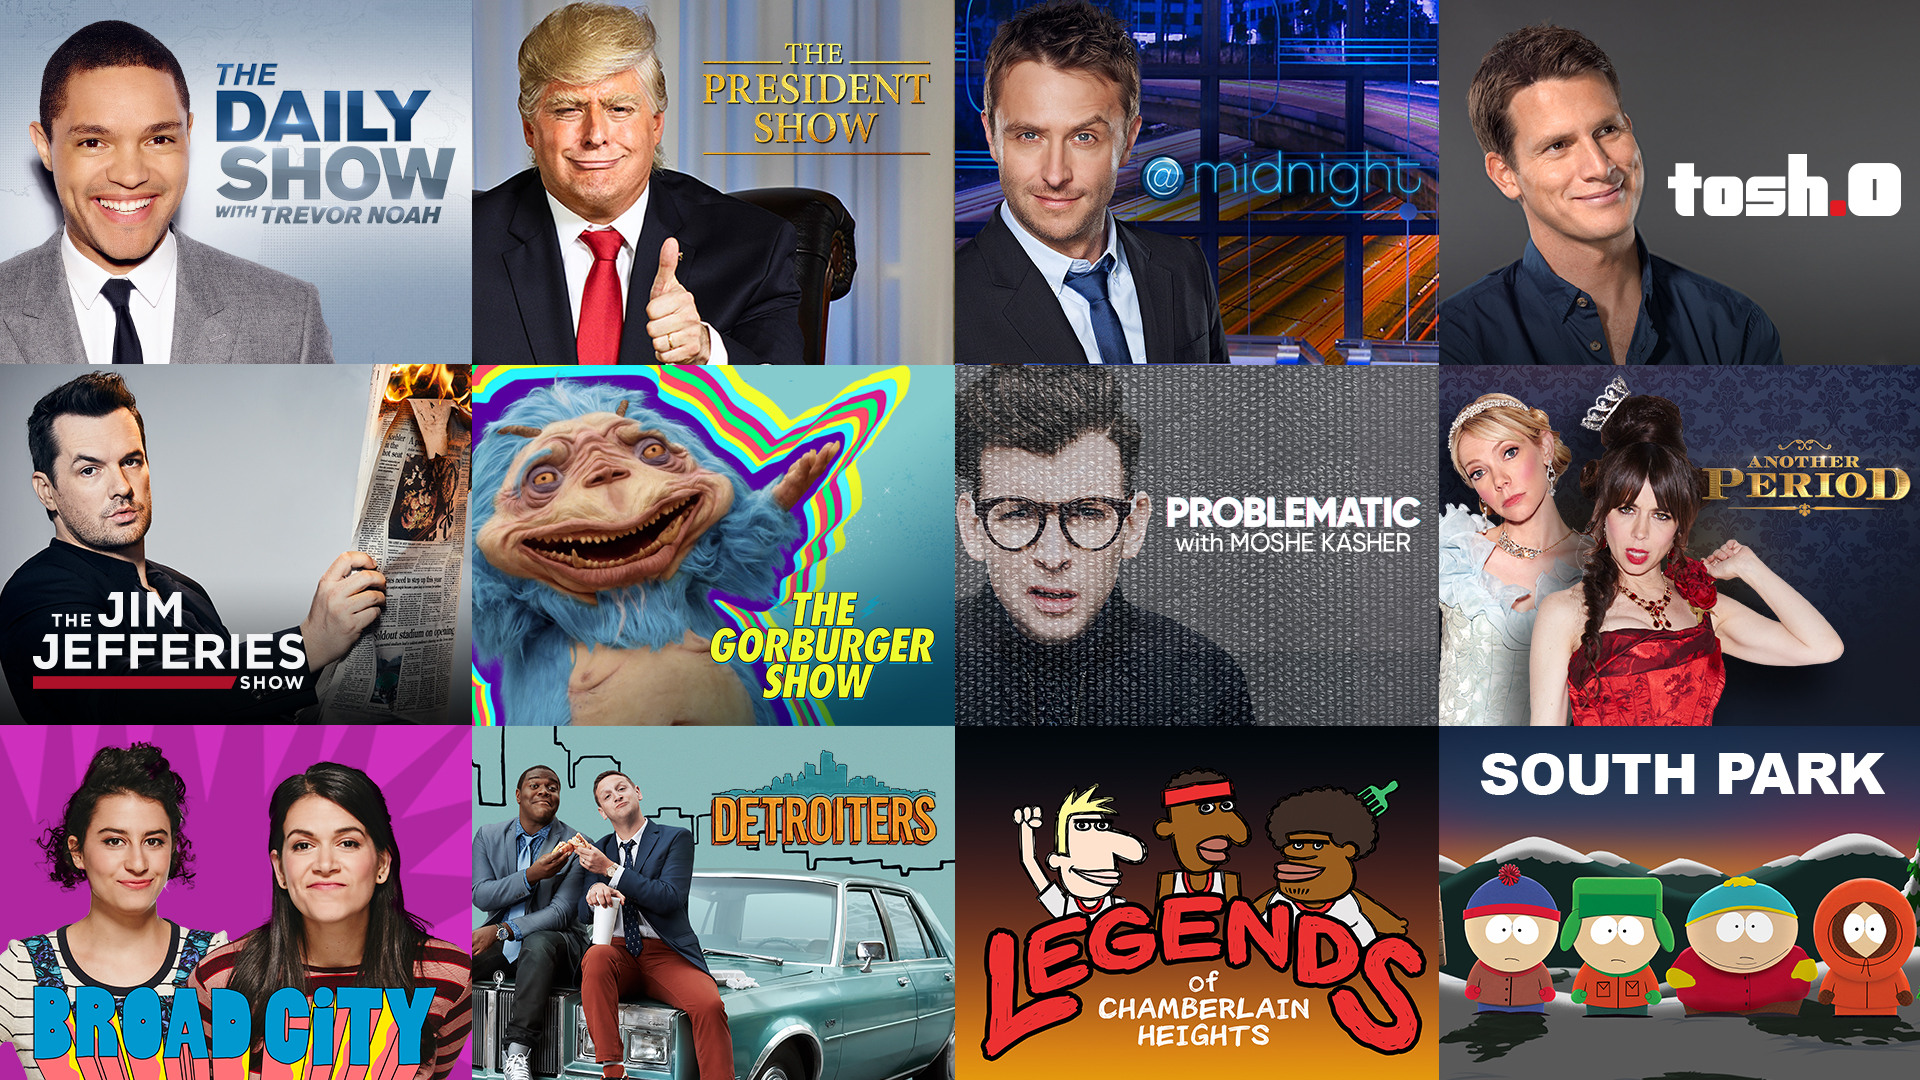 GET FULL EPISODES ON THE COMEDY CENTRAL APP